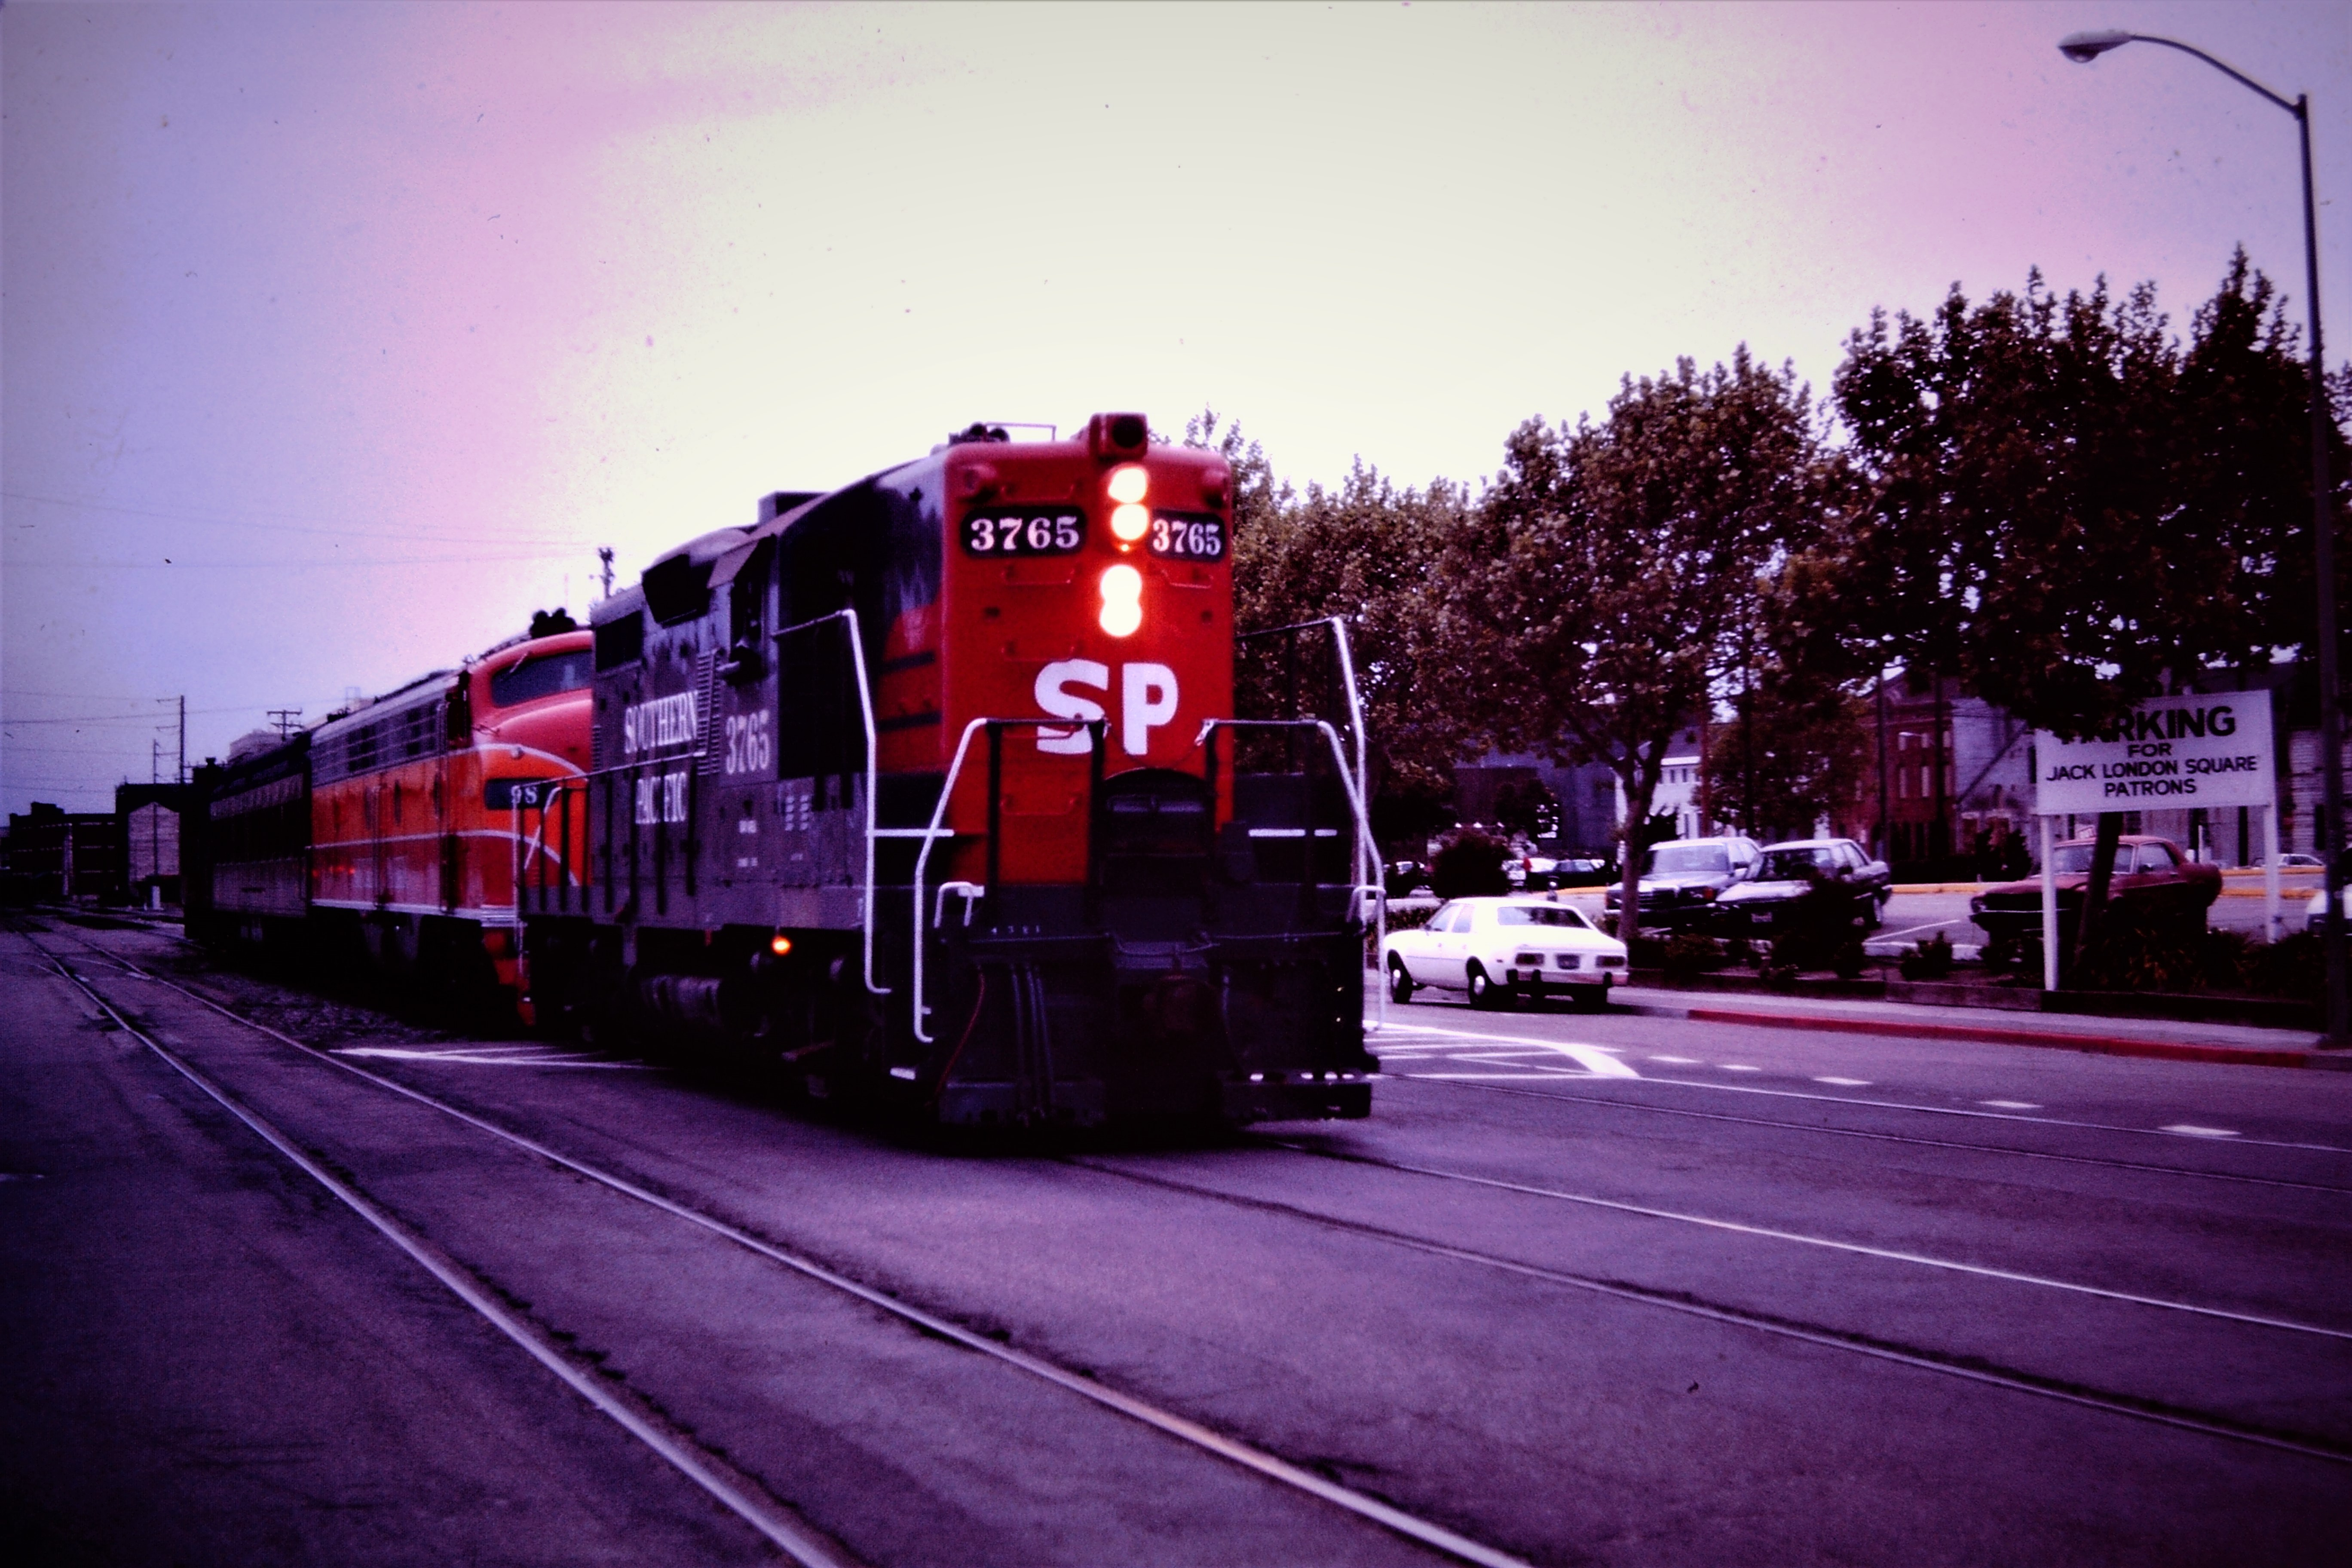 """MAY 1985 in Oakland, Ca. I suspect a """"museum"""" move of some sort. SP 3765 lights ablaze at Jack London Square."""